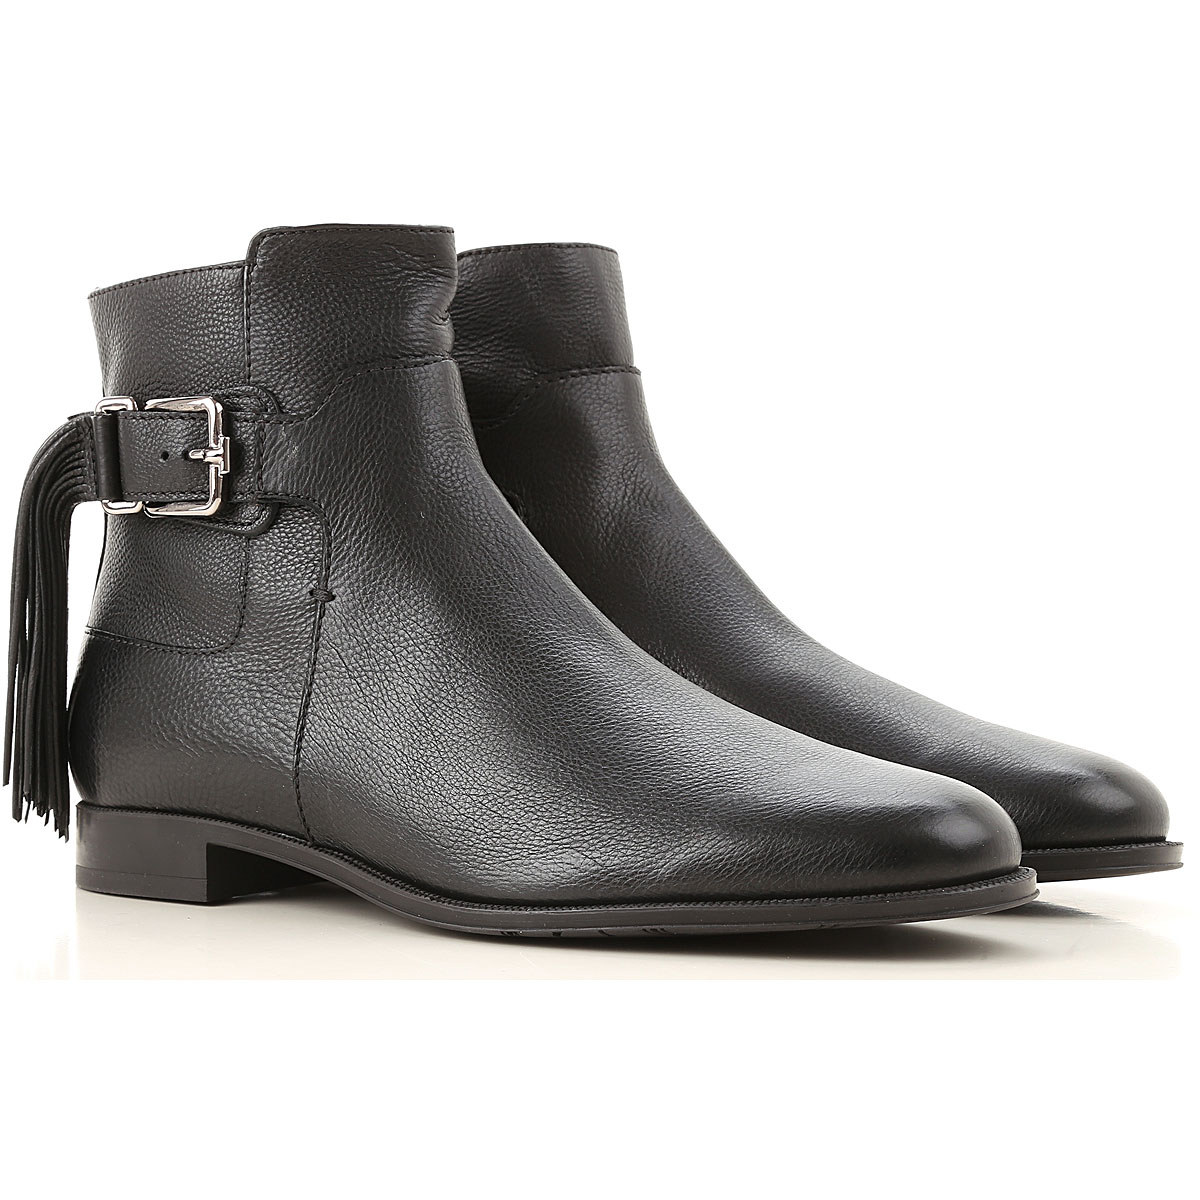 Tods Boots for Women, Booties On Sale, Black, Leather, 2019, 10 5 7